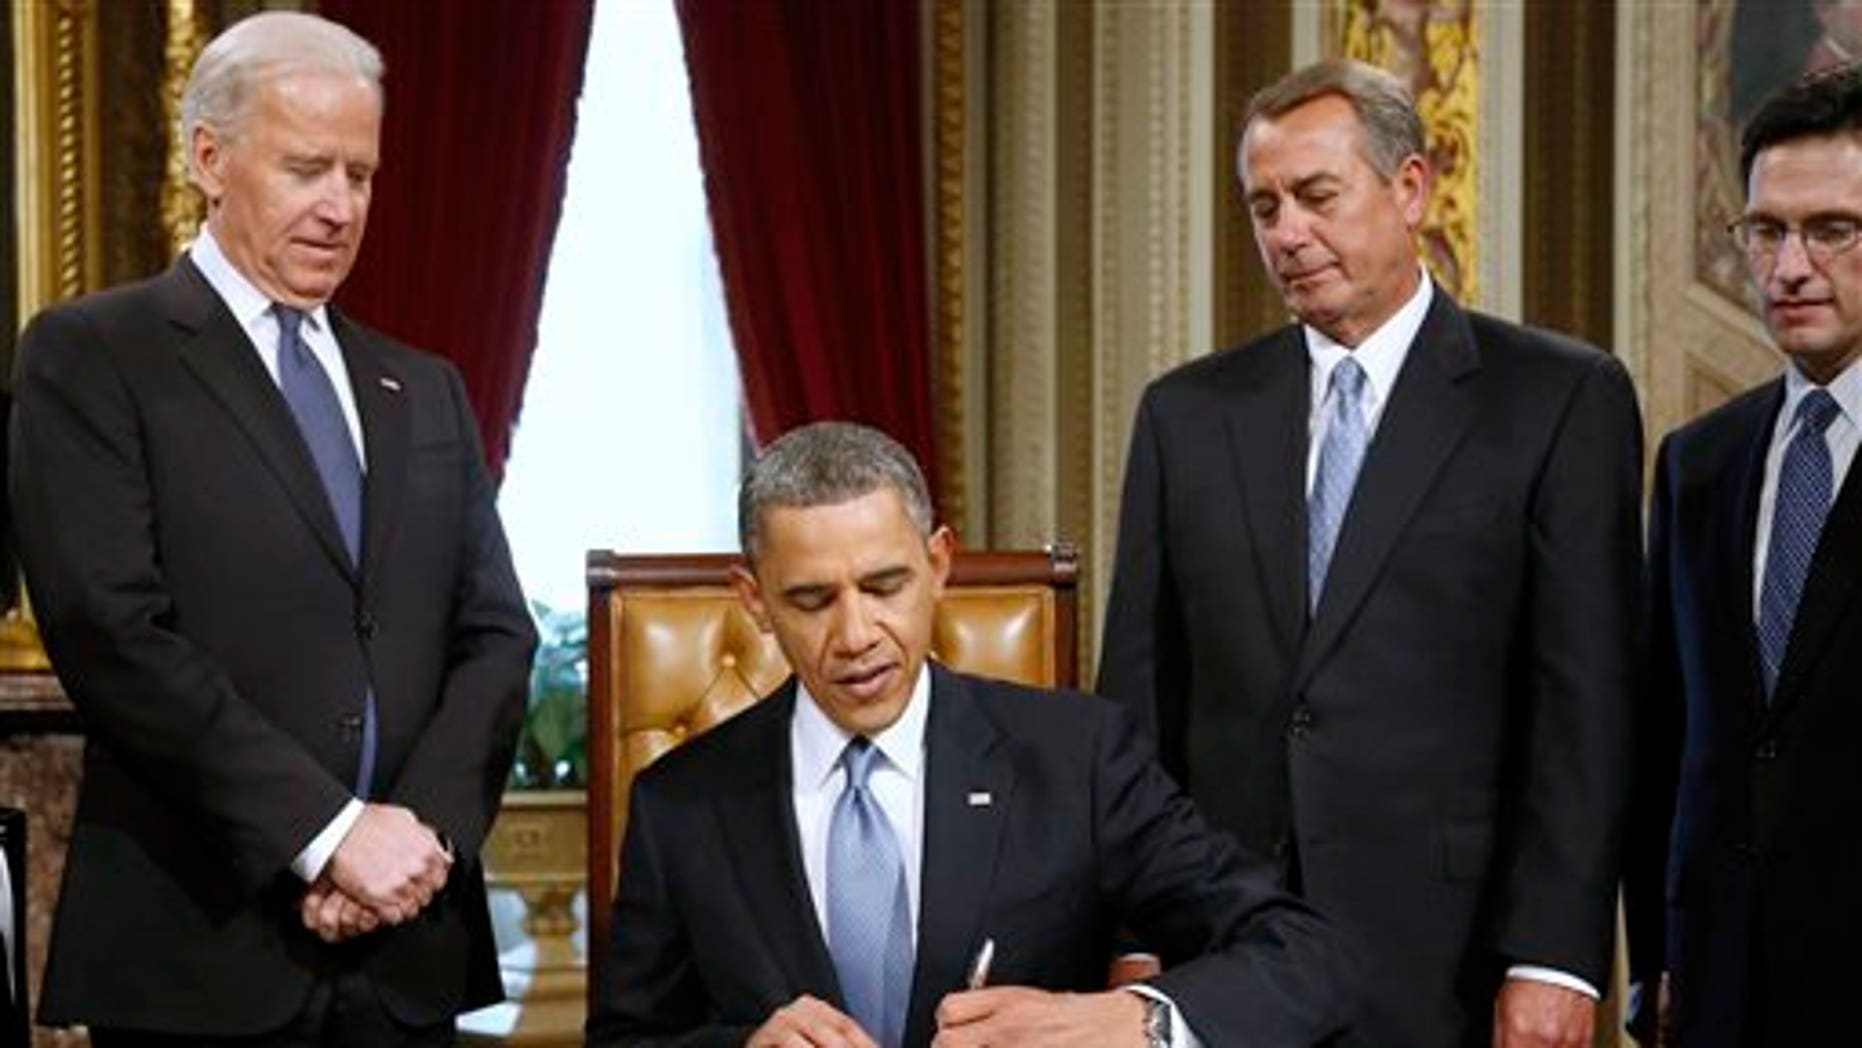 FILE: Jan. 21, 2013: President Obama signs a proclamation to commemorate the inauguration, on Capitol Hill, in Washington.